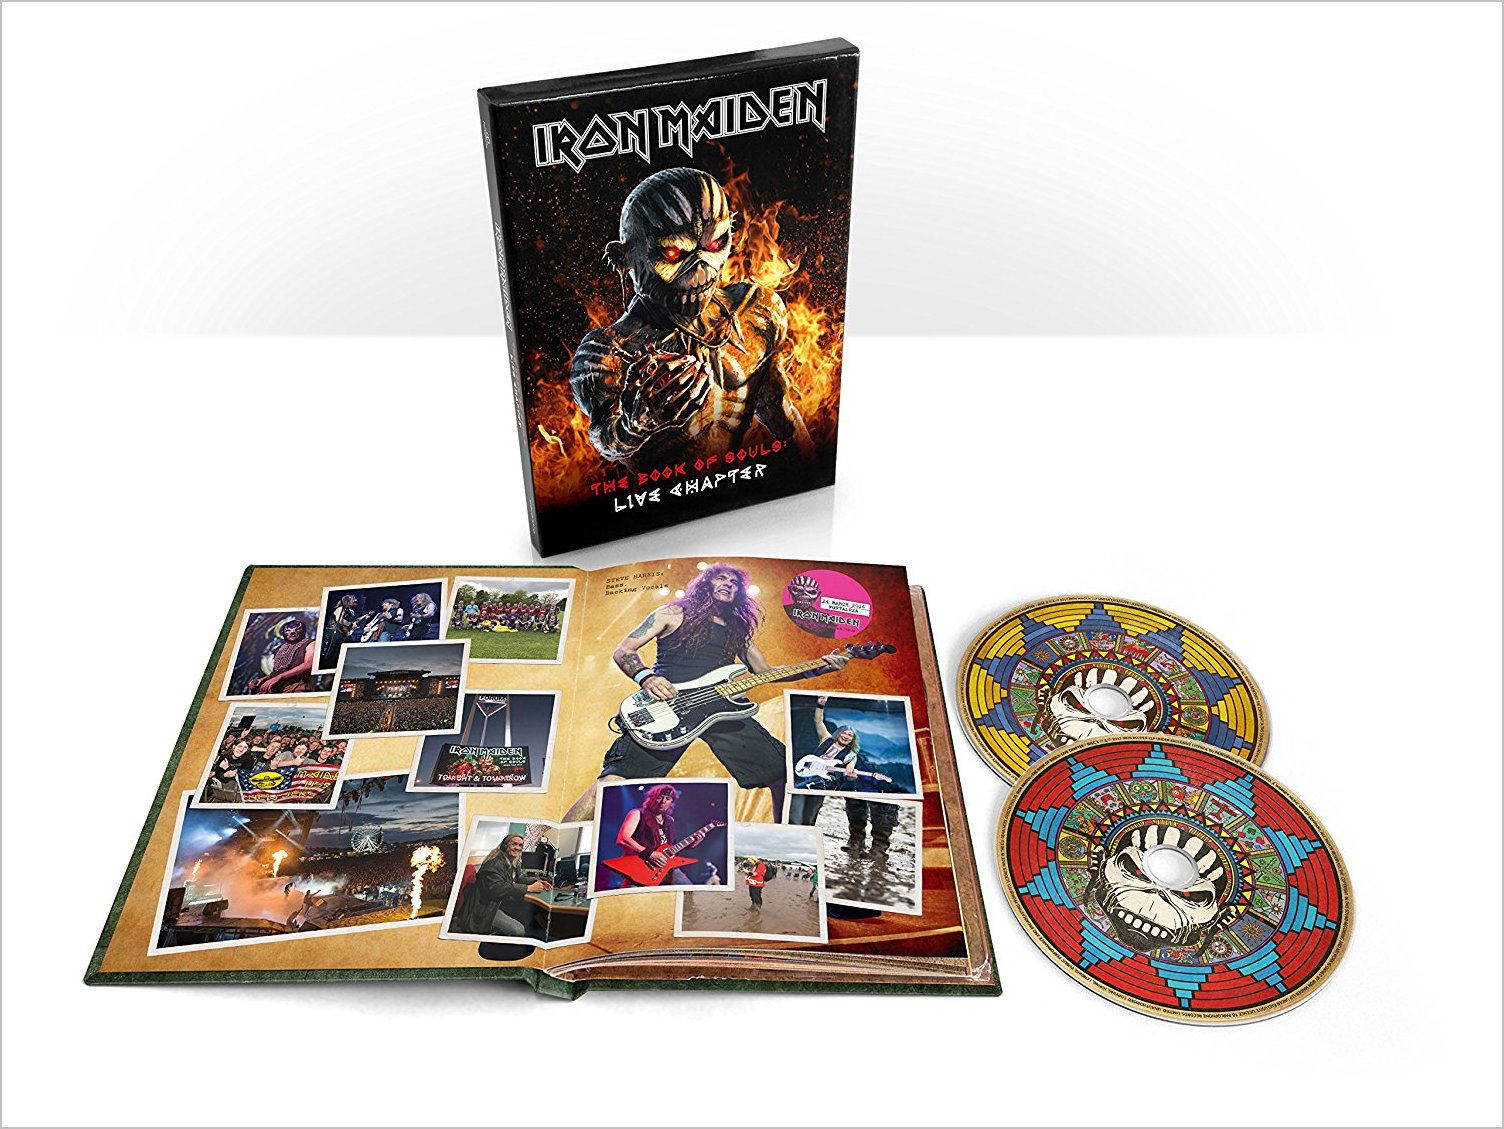 BOOK OF SOULS: LIVE CHAPTER (W / BOOK) (LTD) (DL-IRON MAIDEN